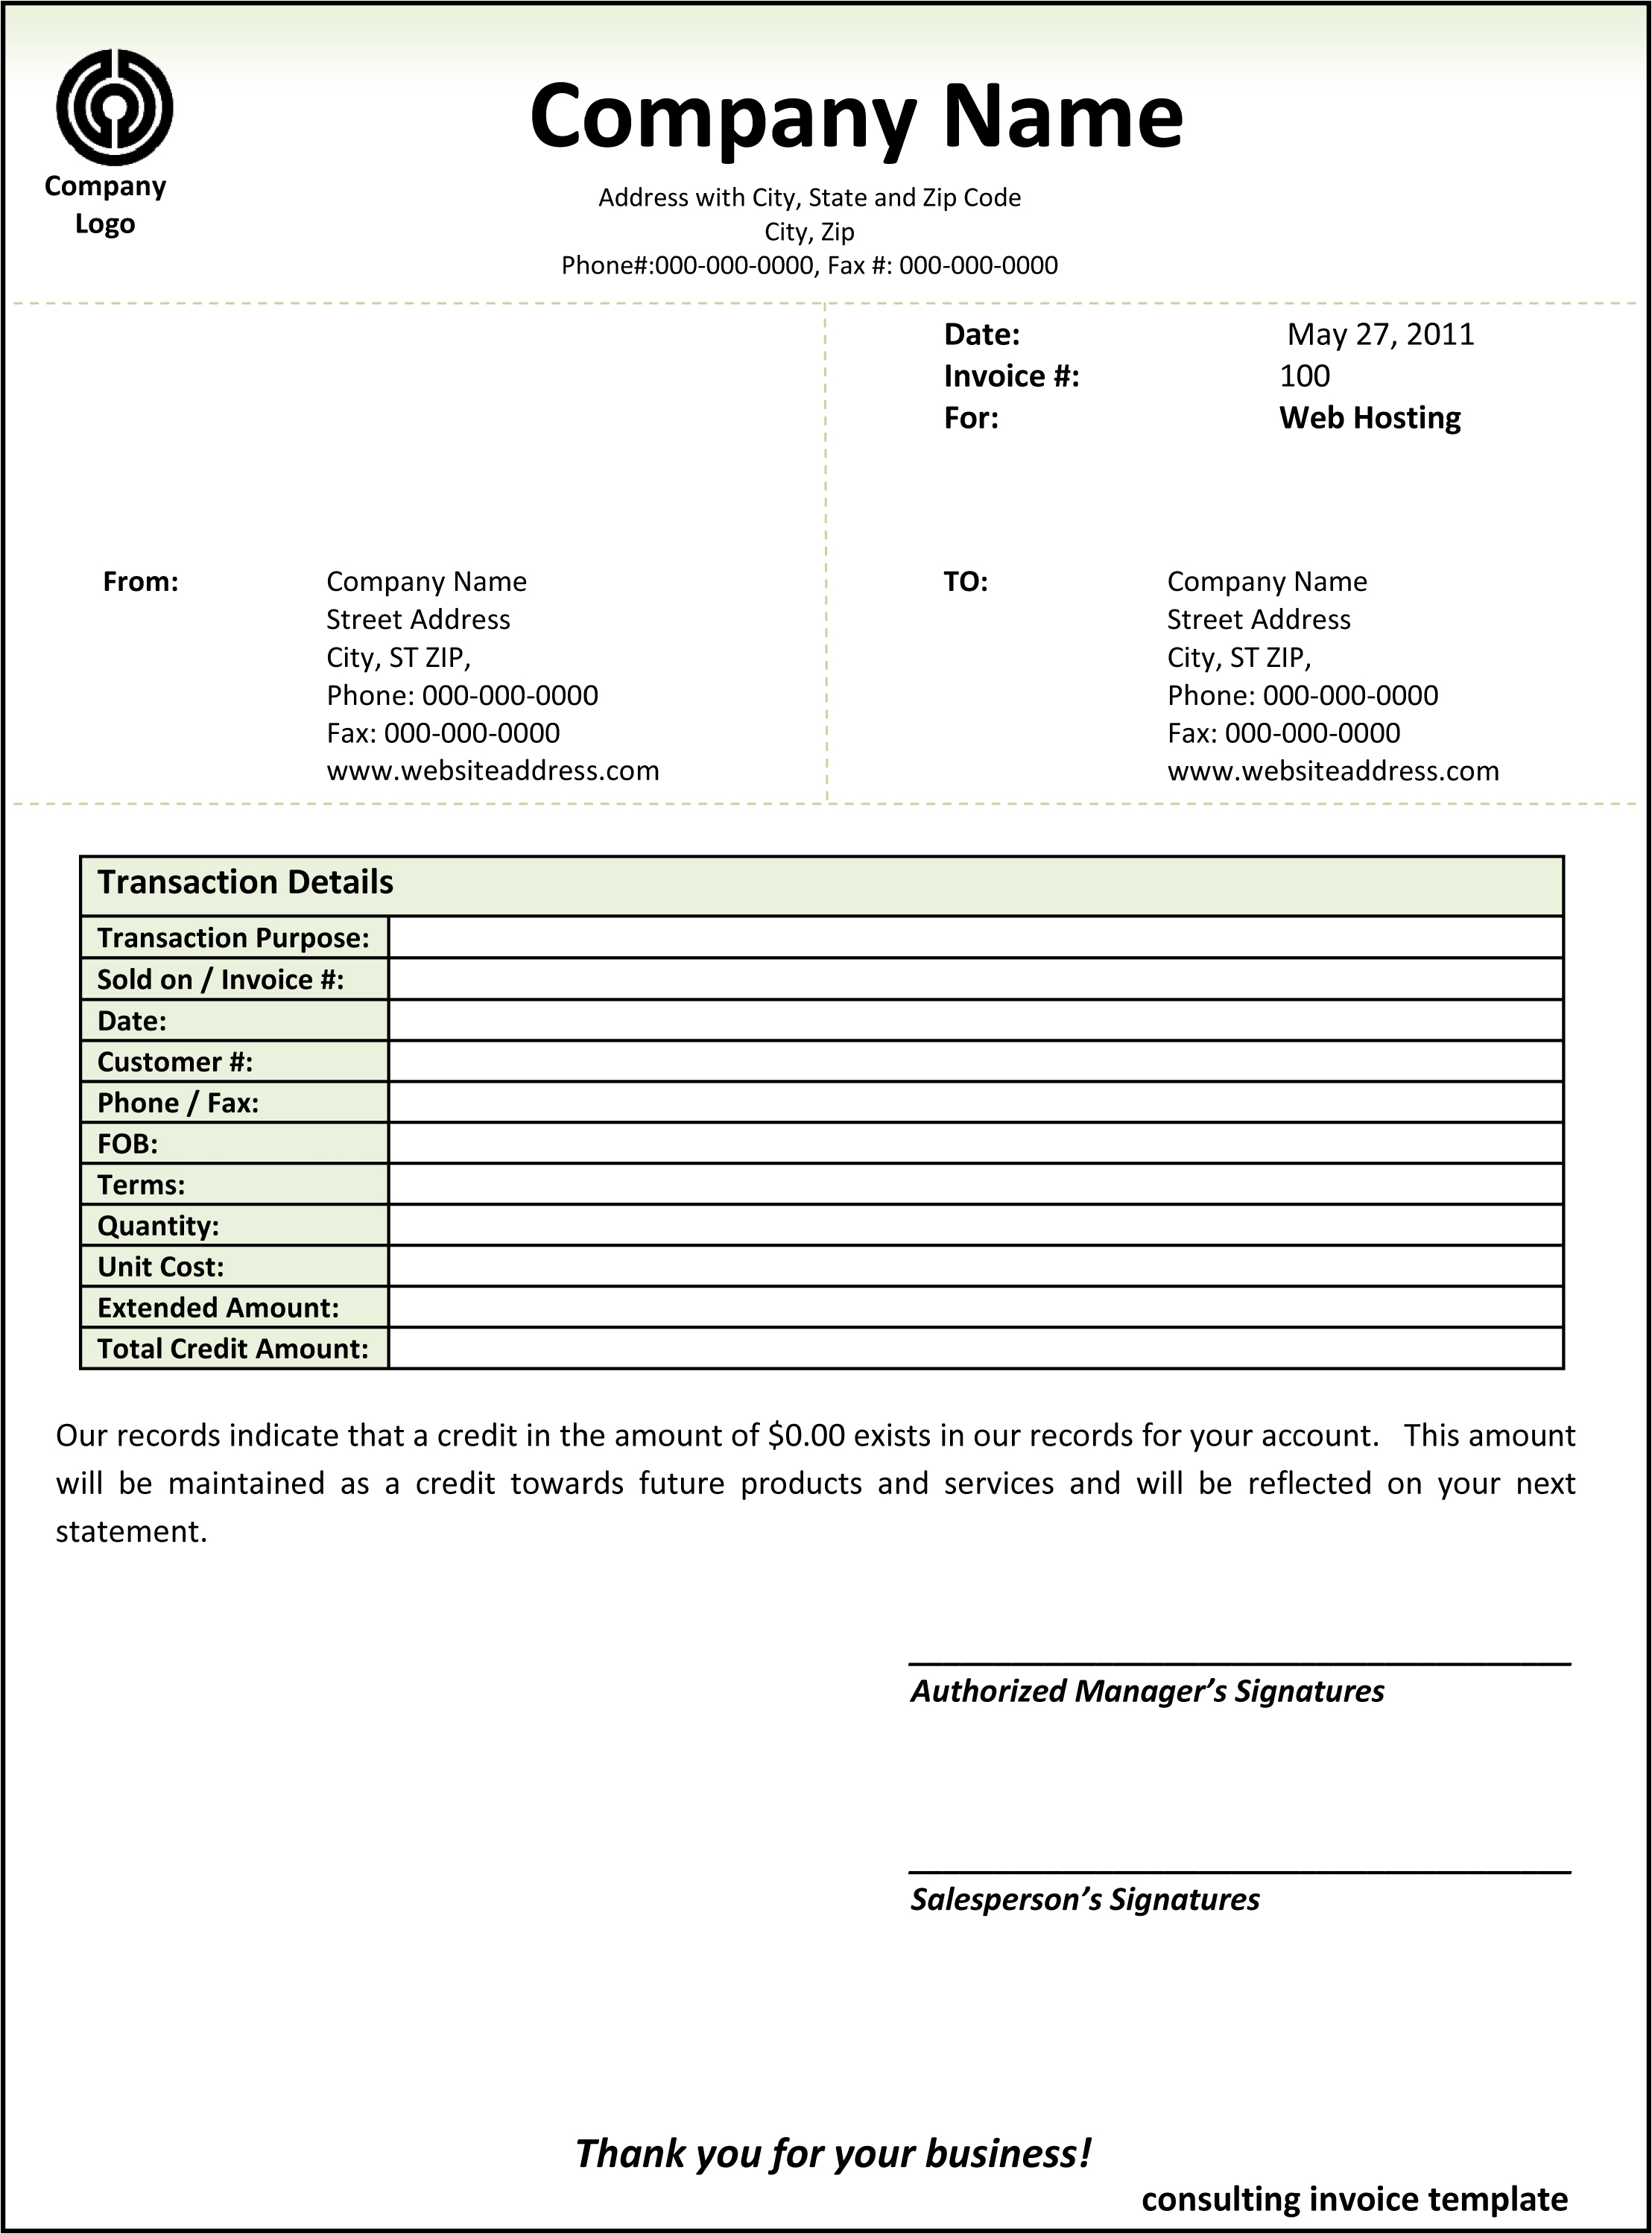 word invoice template | just another multisites site freelance invoice template word